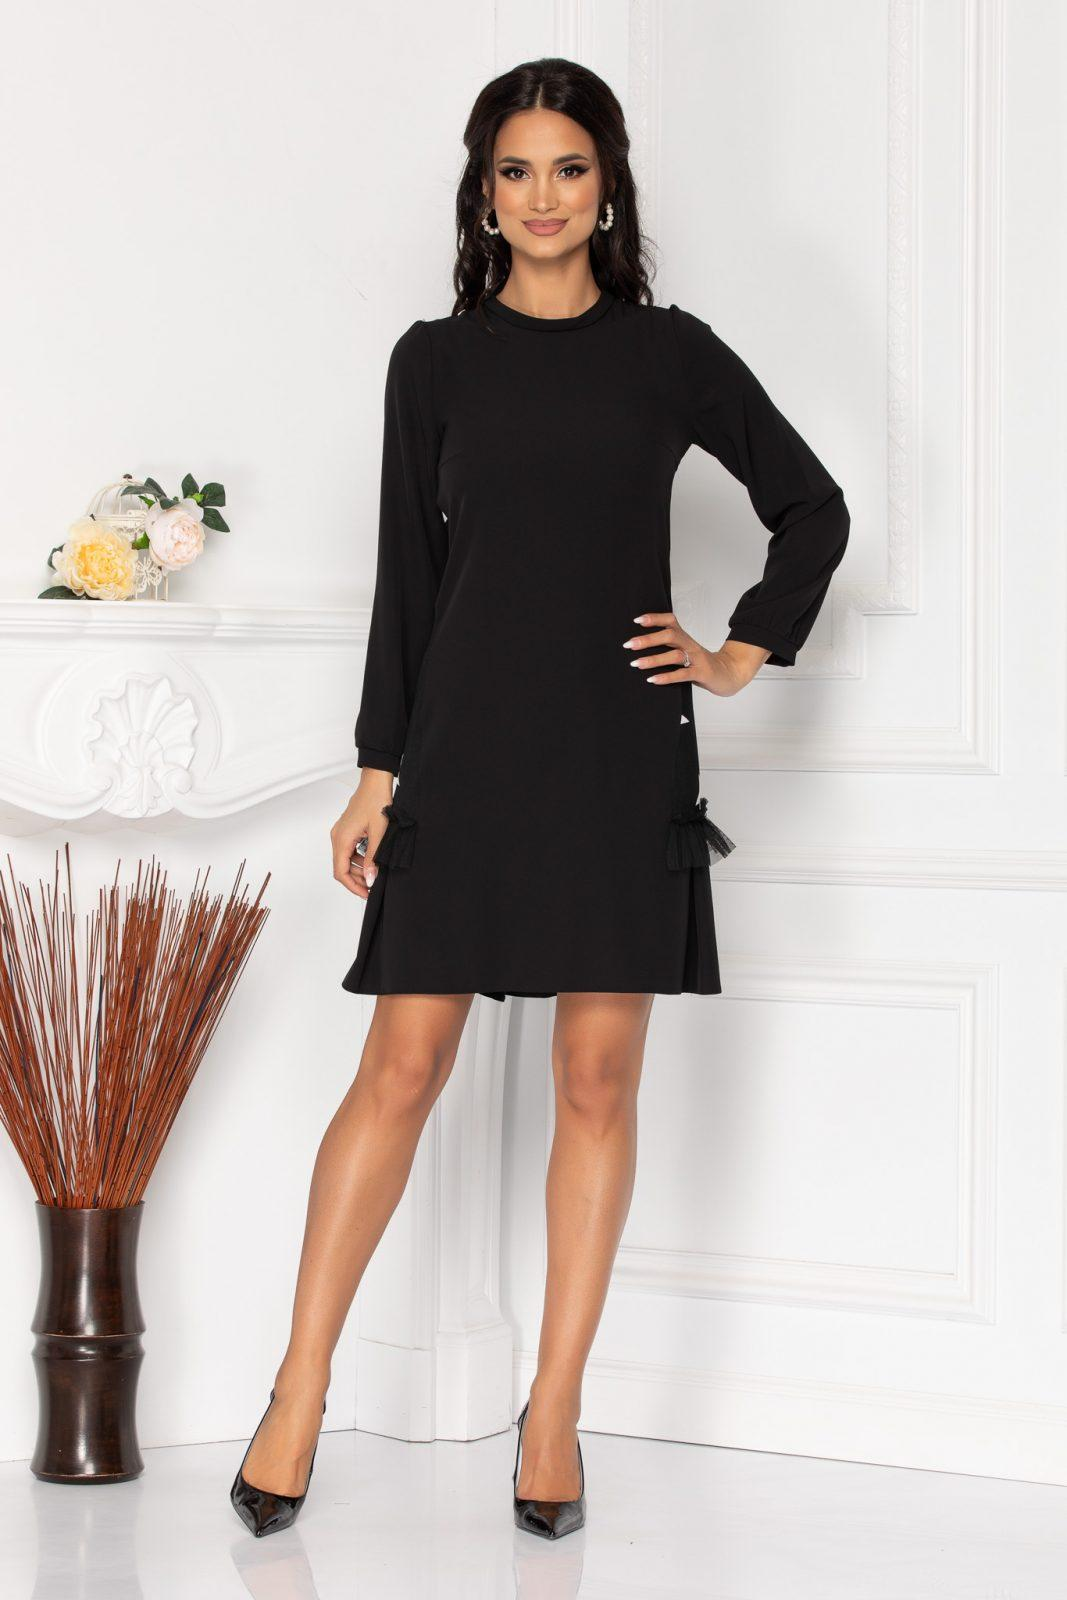 Moze Roberta Black Dress